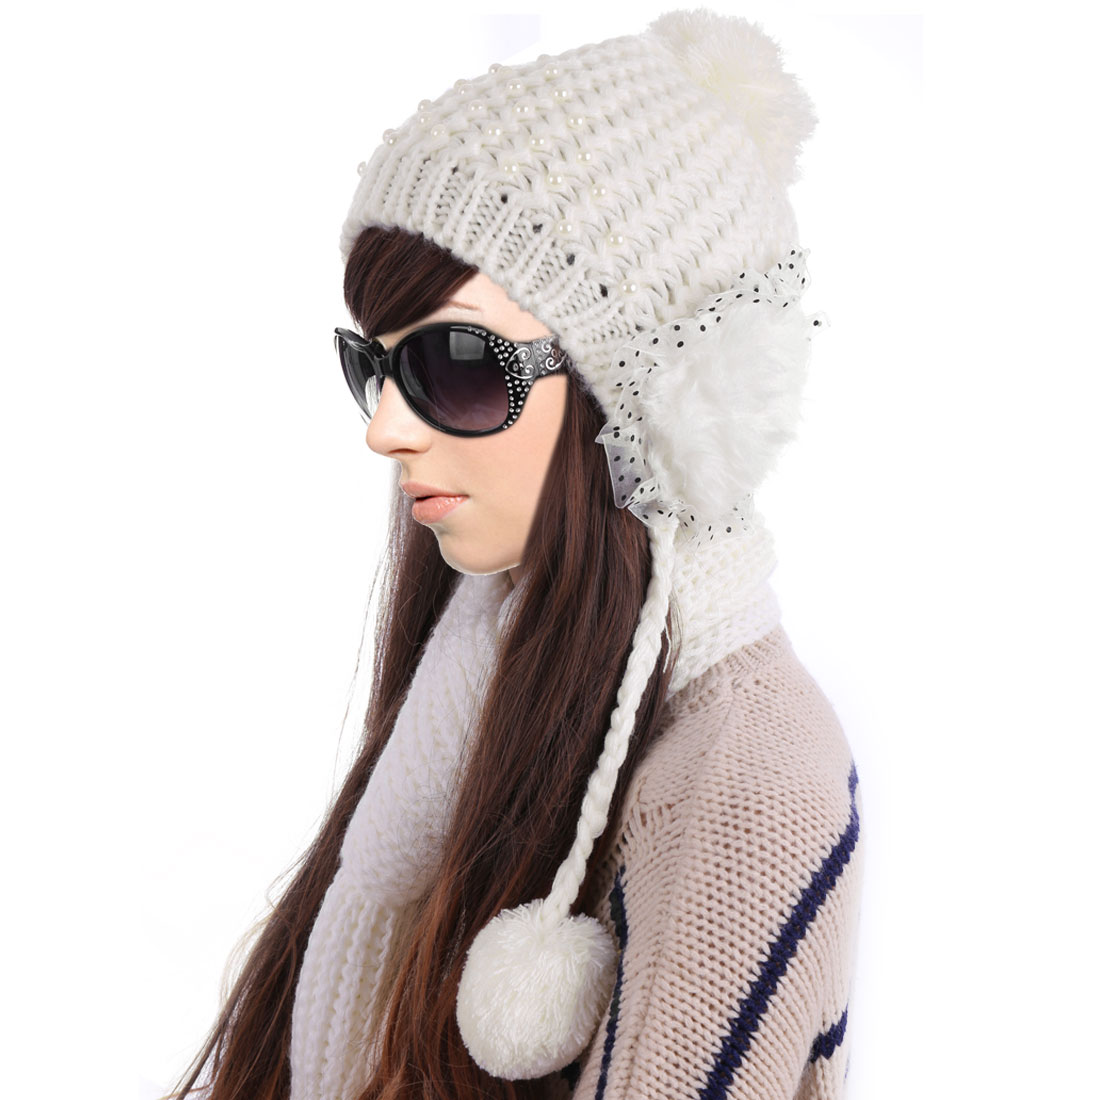 Winter Warm Pom Pom Patchwork Design White Ear Flap Hat For Women